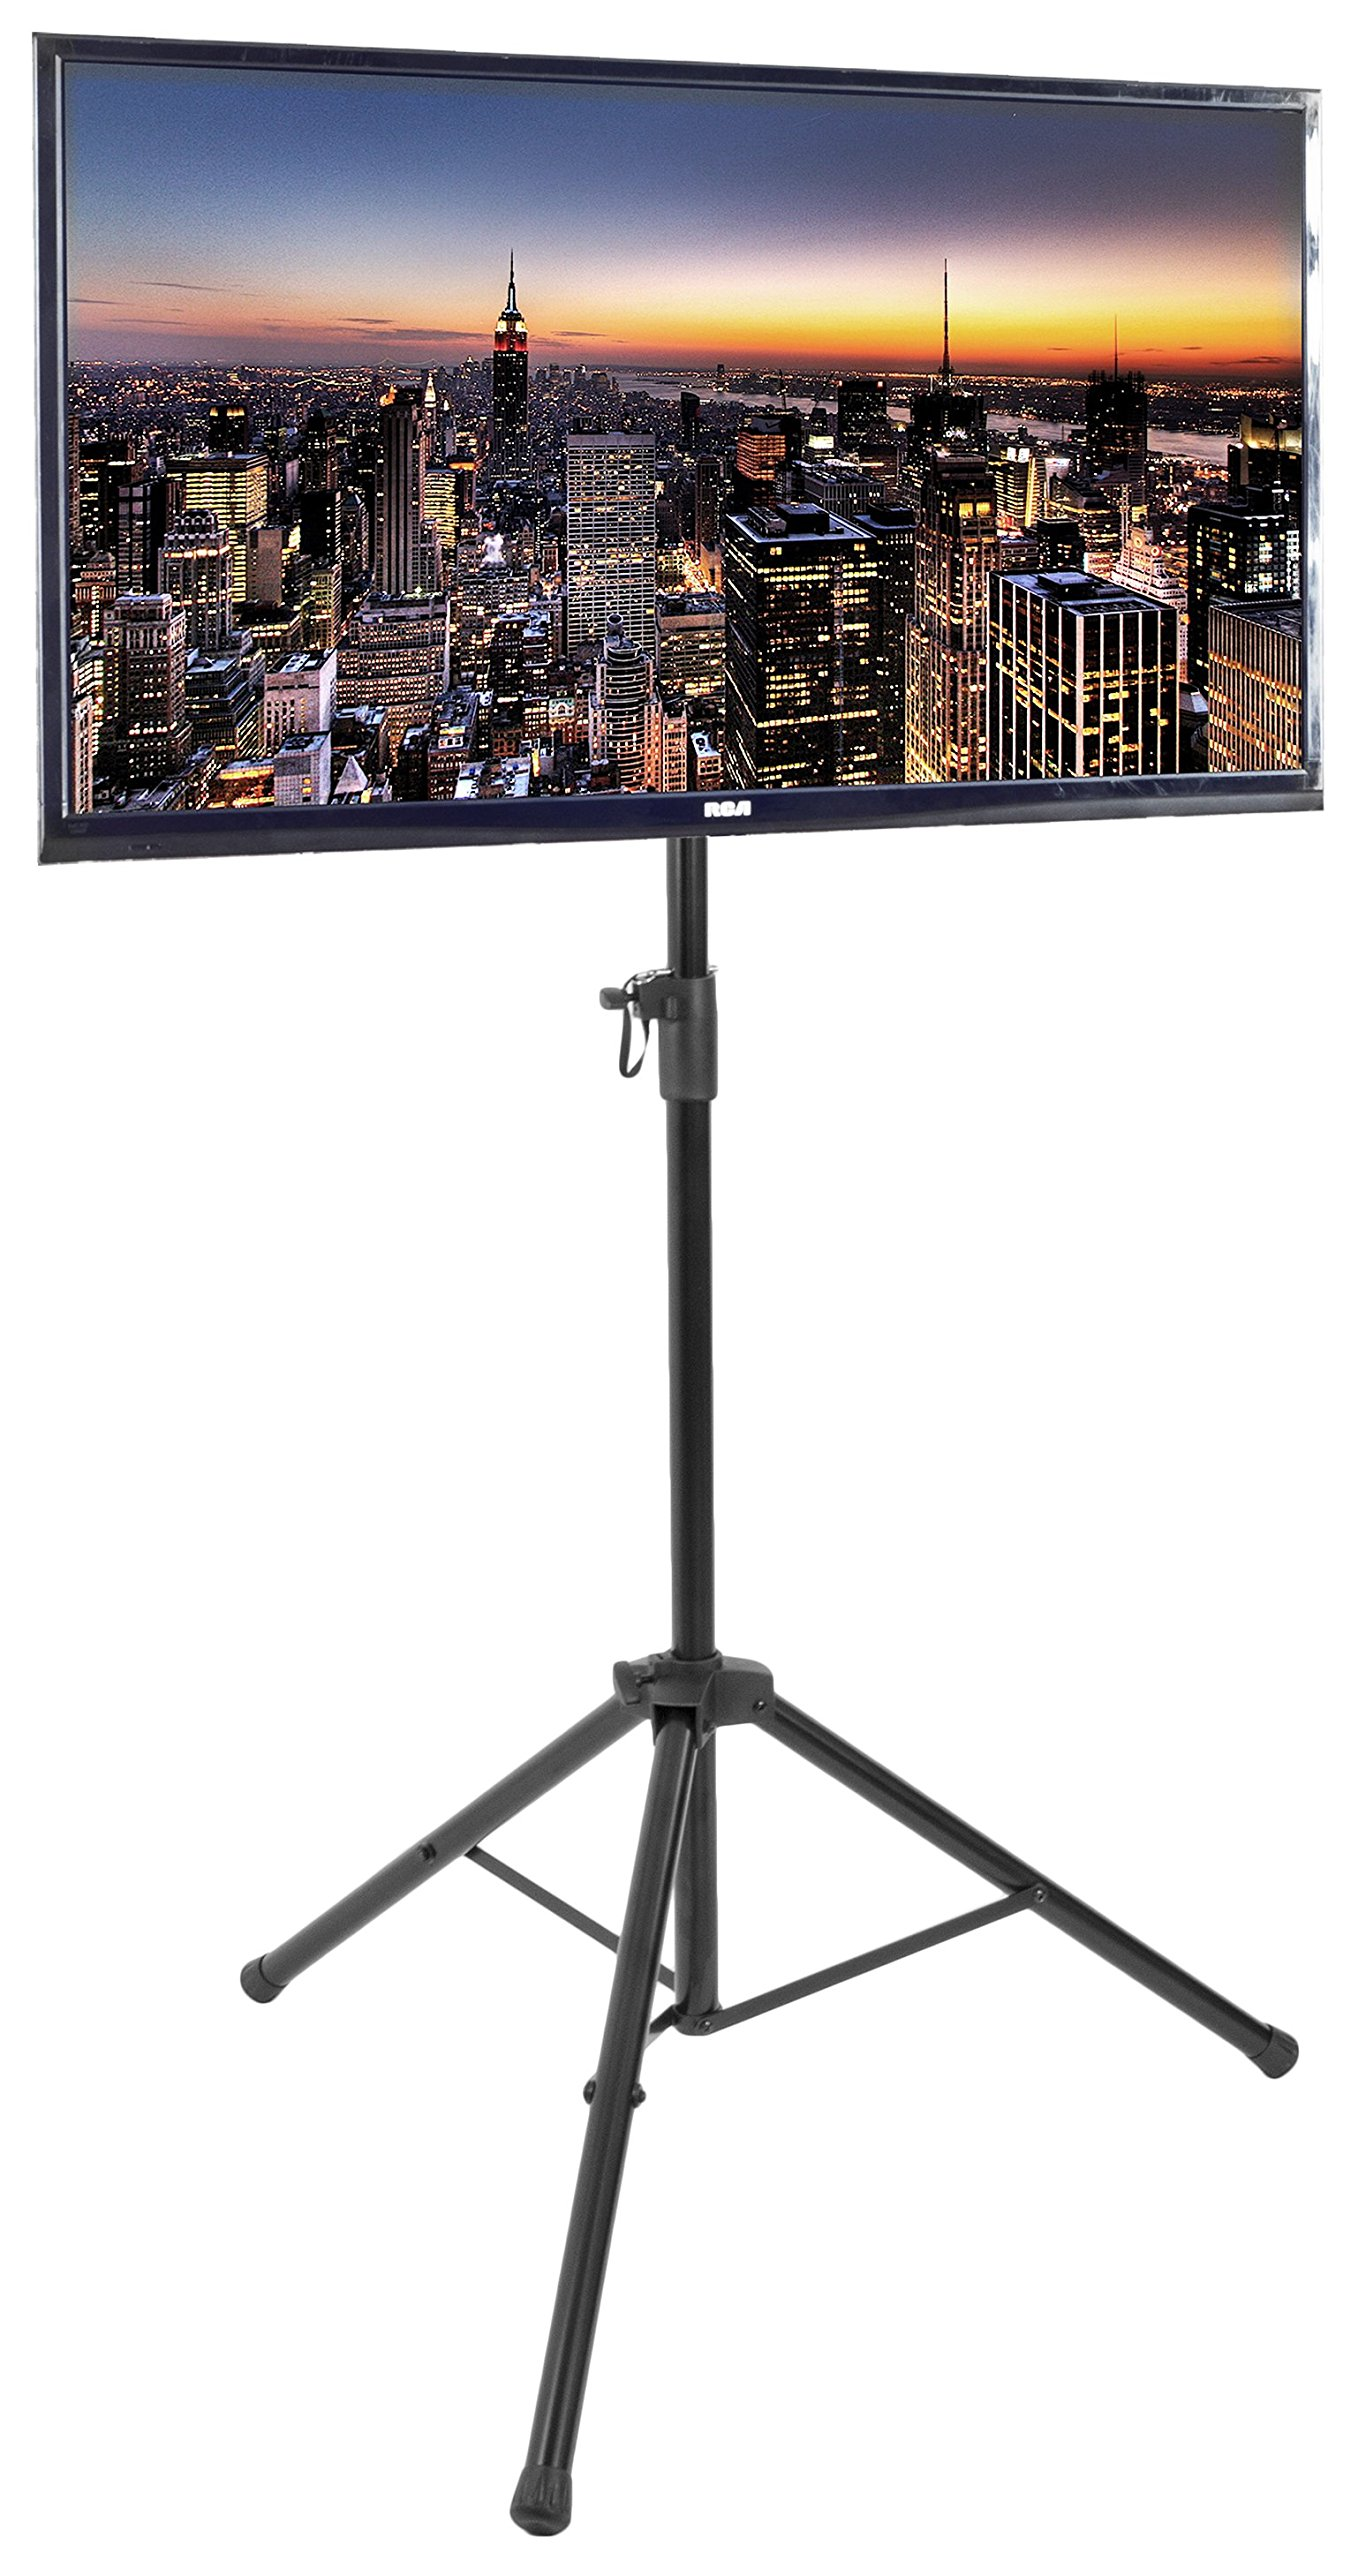 VIVO Black Tripod TV Display Portable Floor Stand Height Adjustable Mount for 32'' to 55'' Flat Screens (STAND-TV55T)